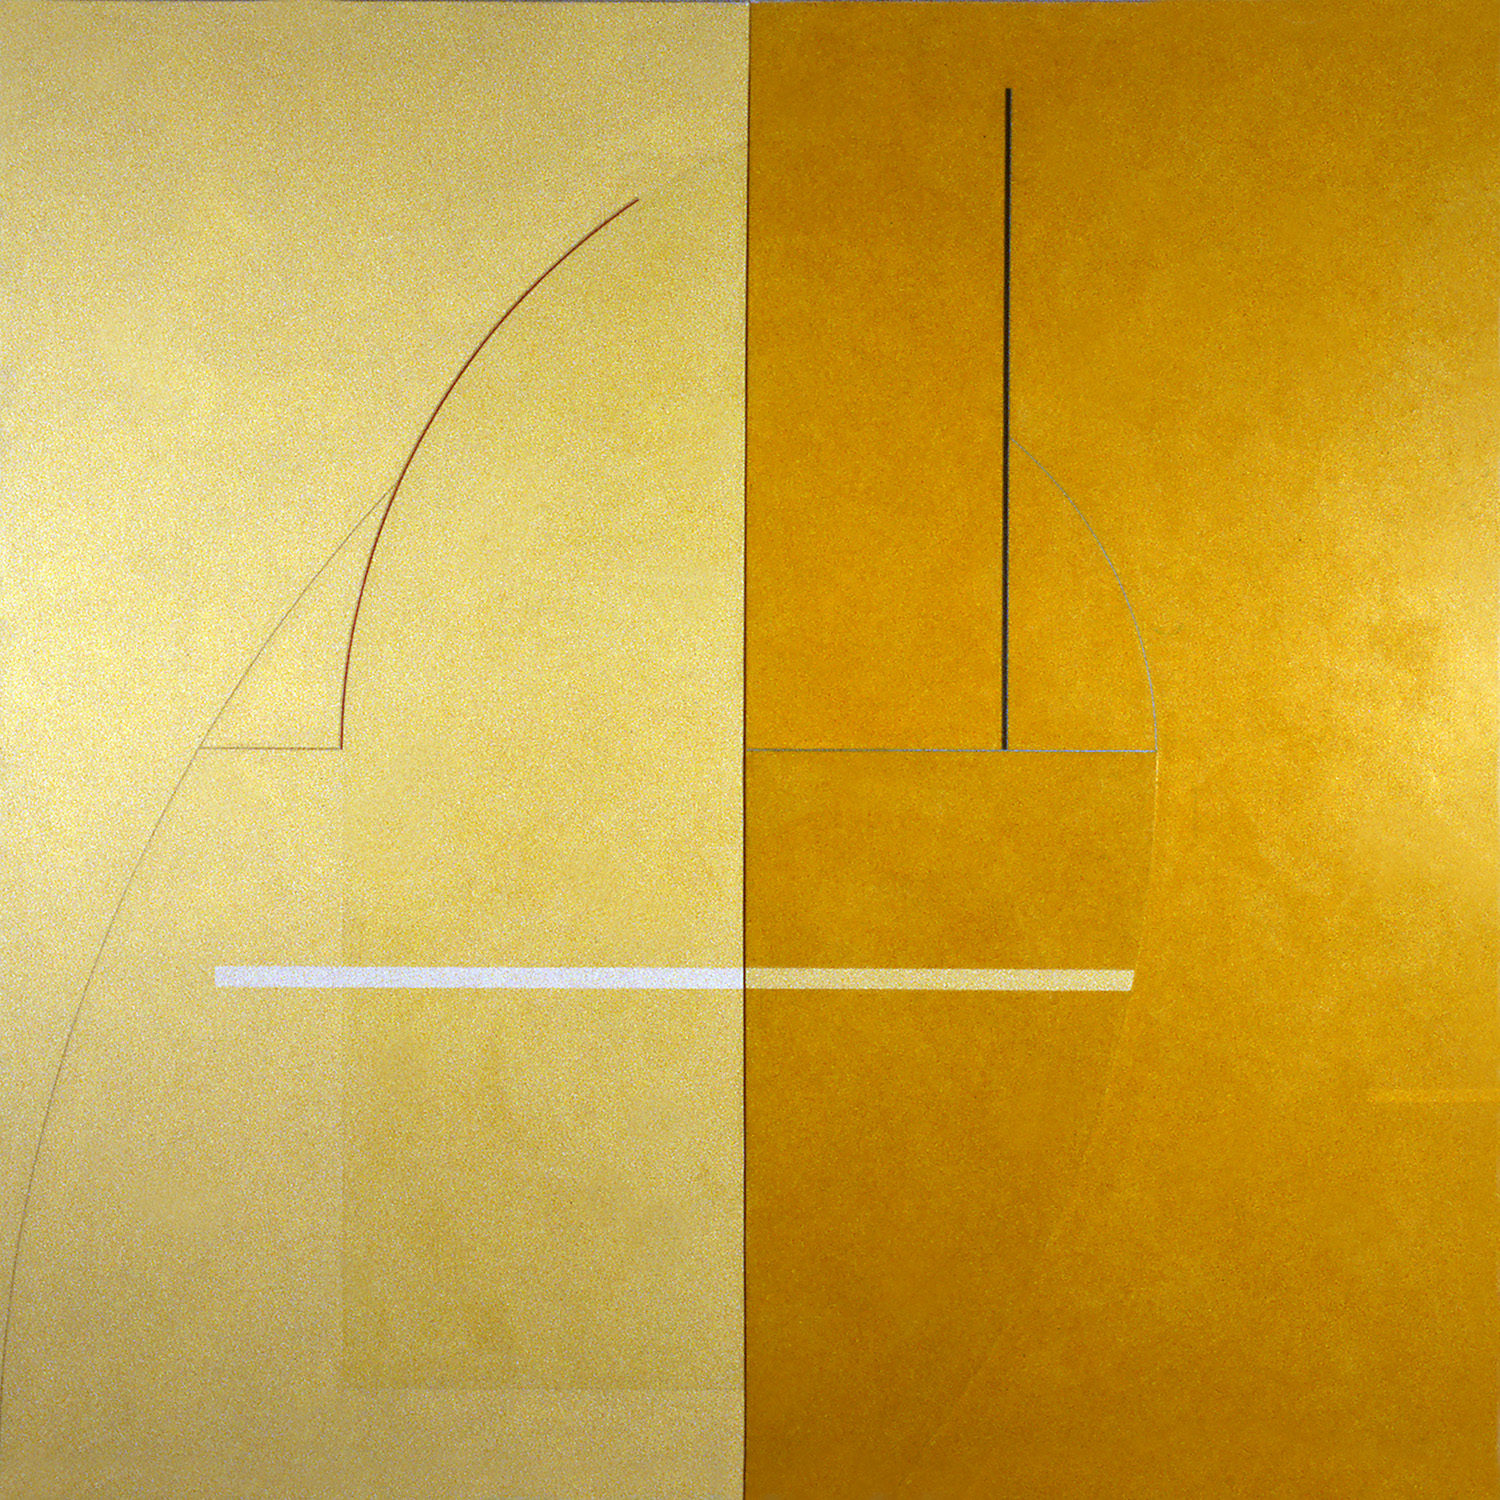 Janus X, 1986, Acrylic on canvas over panels, 72 x 72 inches.